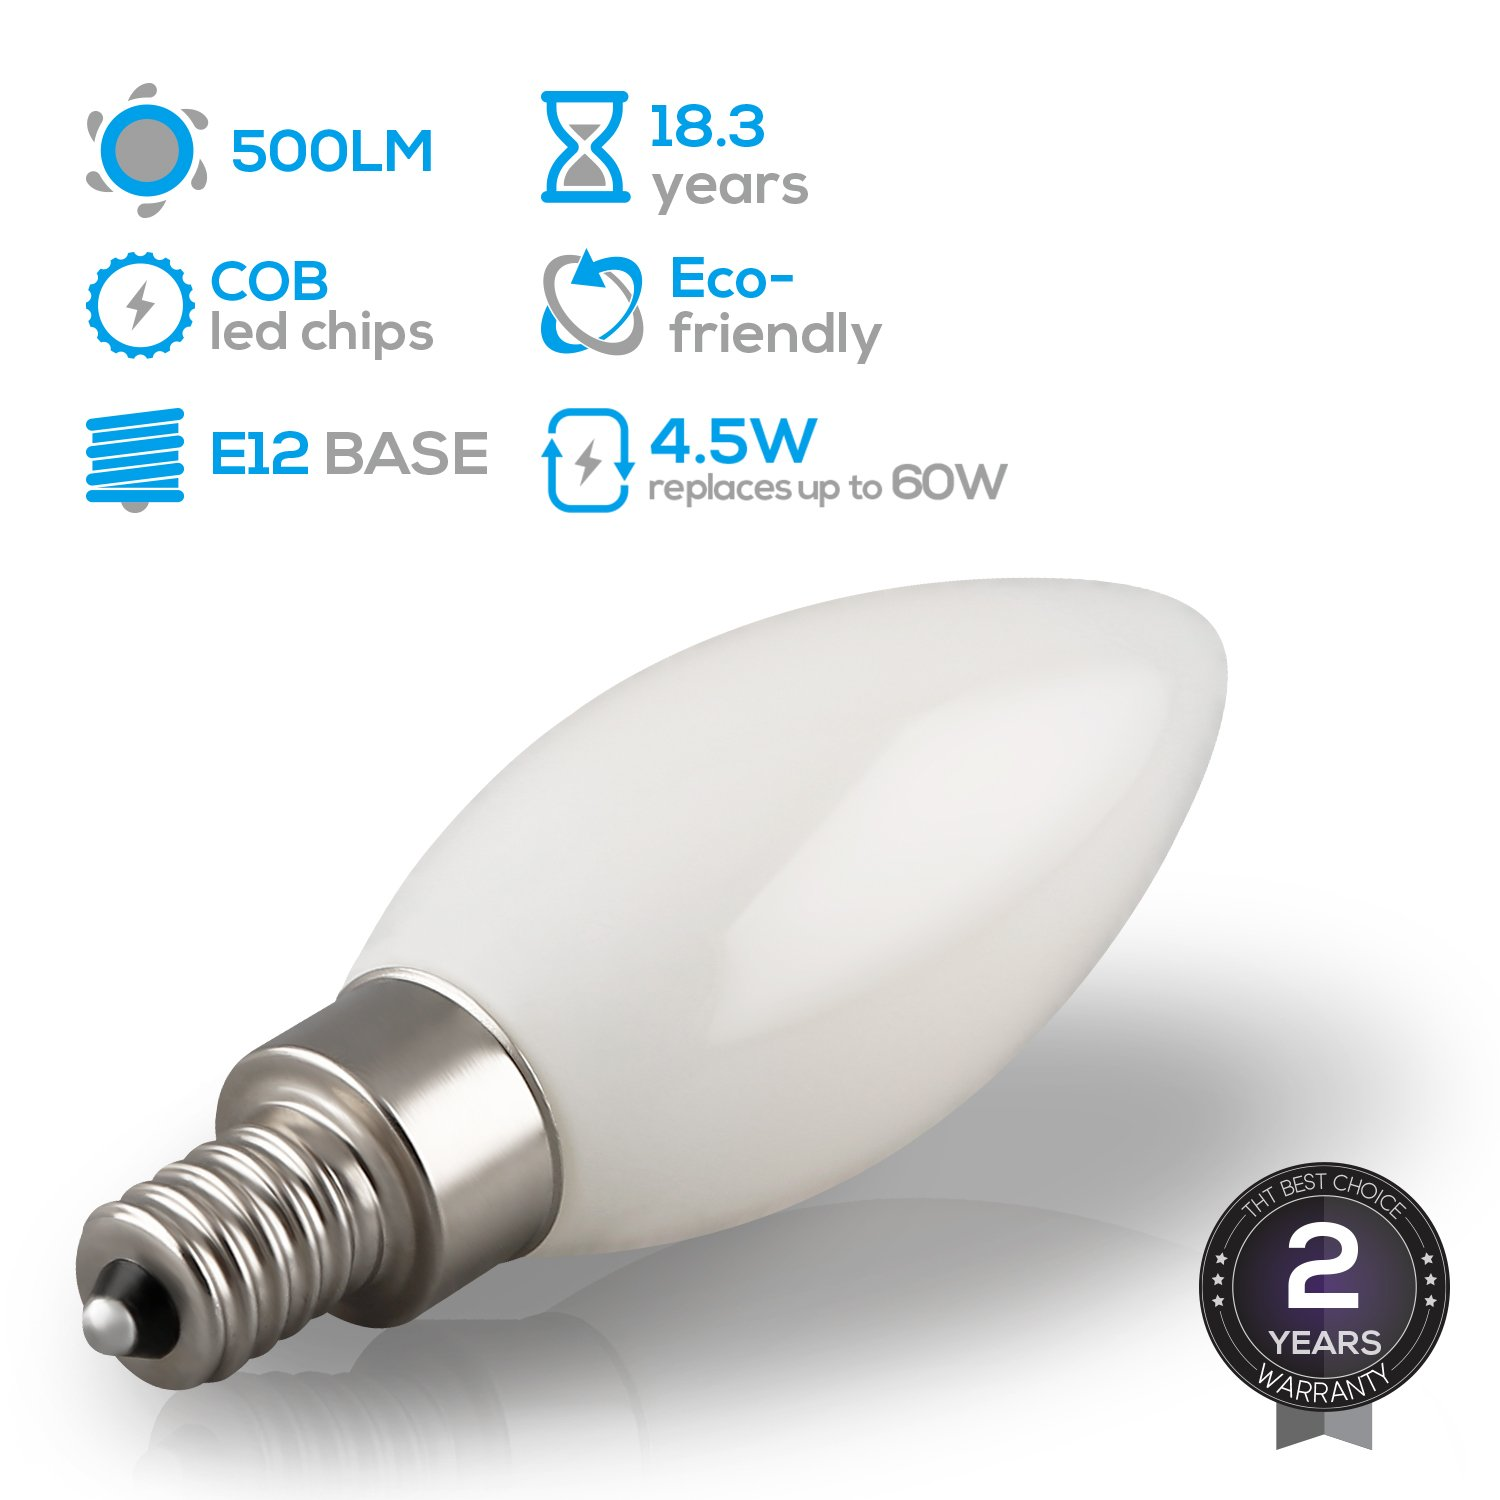 Amazon led dimmable frosted glass filament candelabra bulb amazon led dimmable frosted glass filament candelabra bulb 45w 60w equiv c11 decorative milky candle bulb ul listed 2700k soft white 500lm arubaitofo Image collections